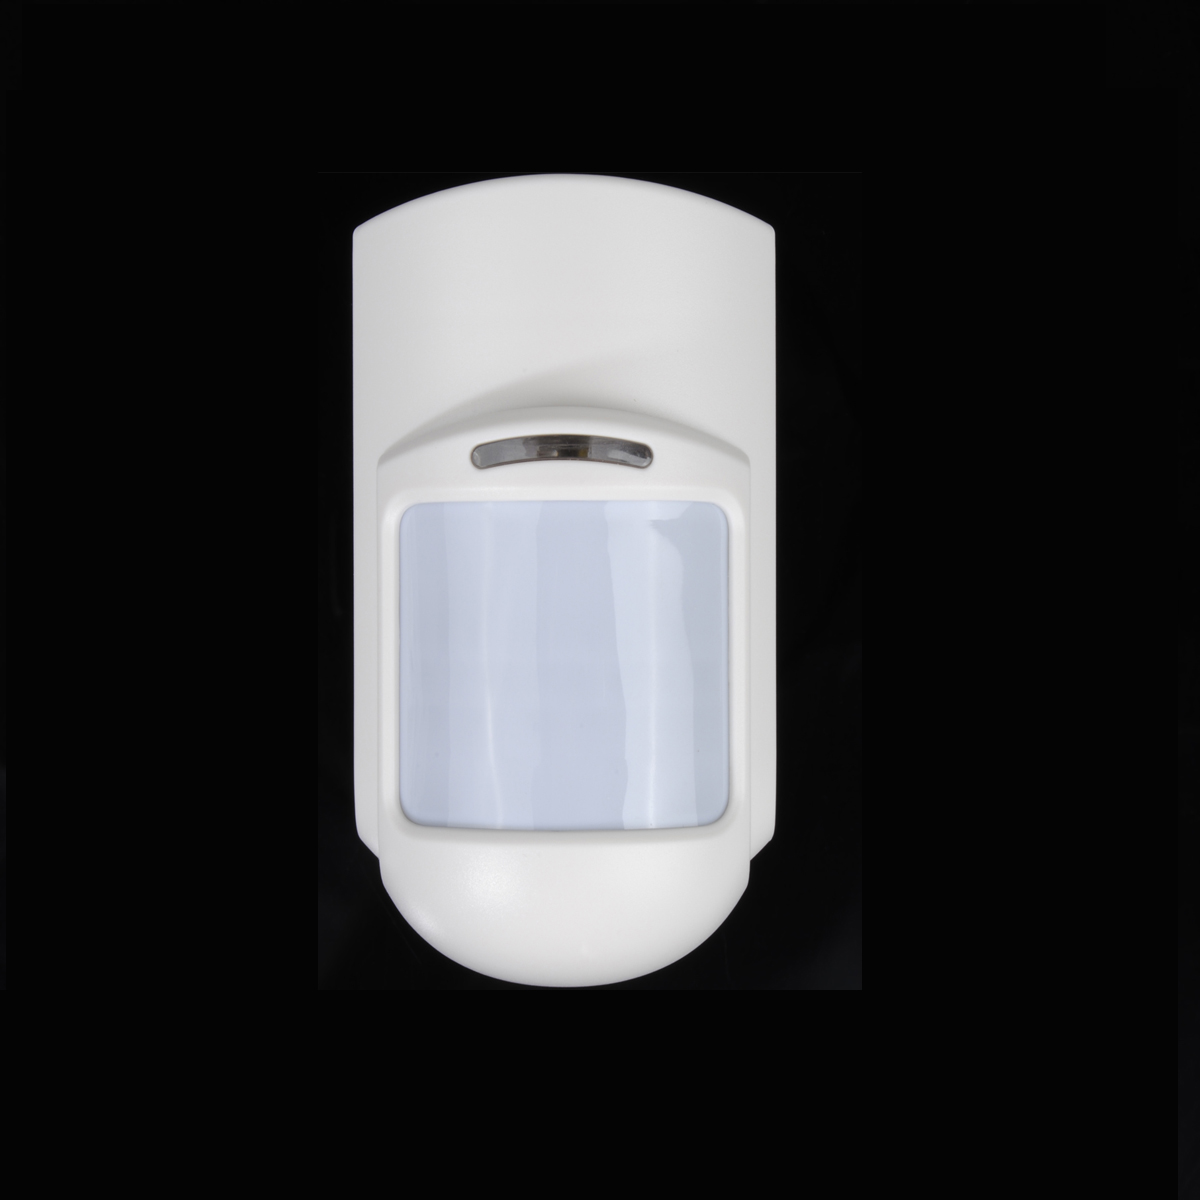 433mhz wireless pir motion detector for home alarm home security title=433mhz wireless pir motion detector for home alarm home security